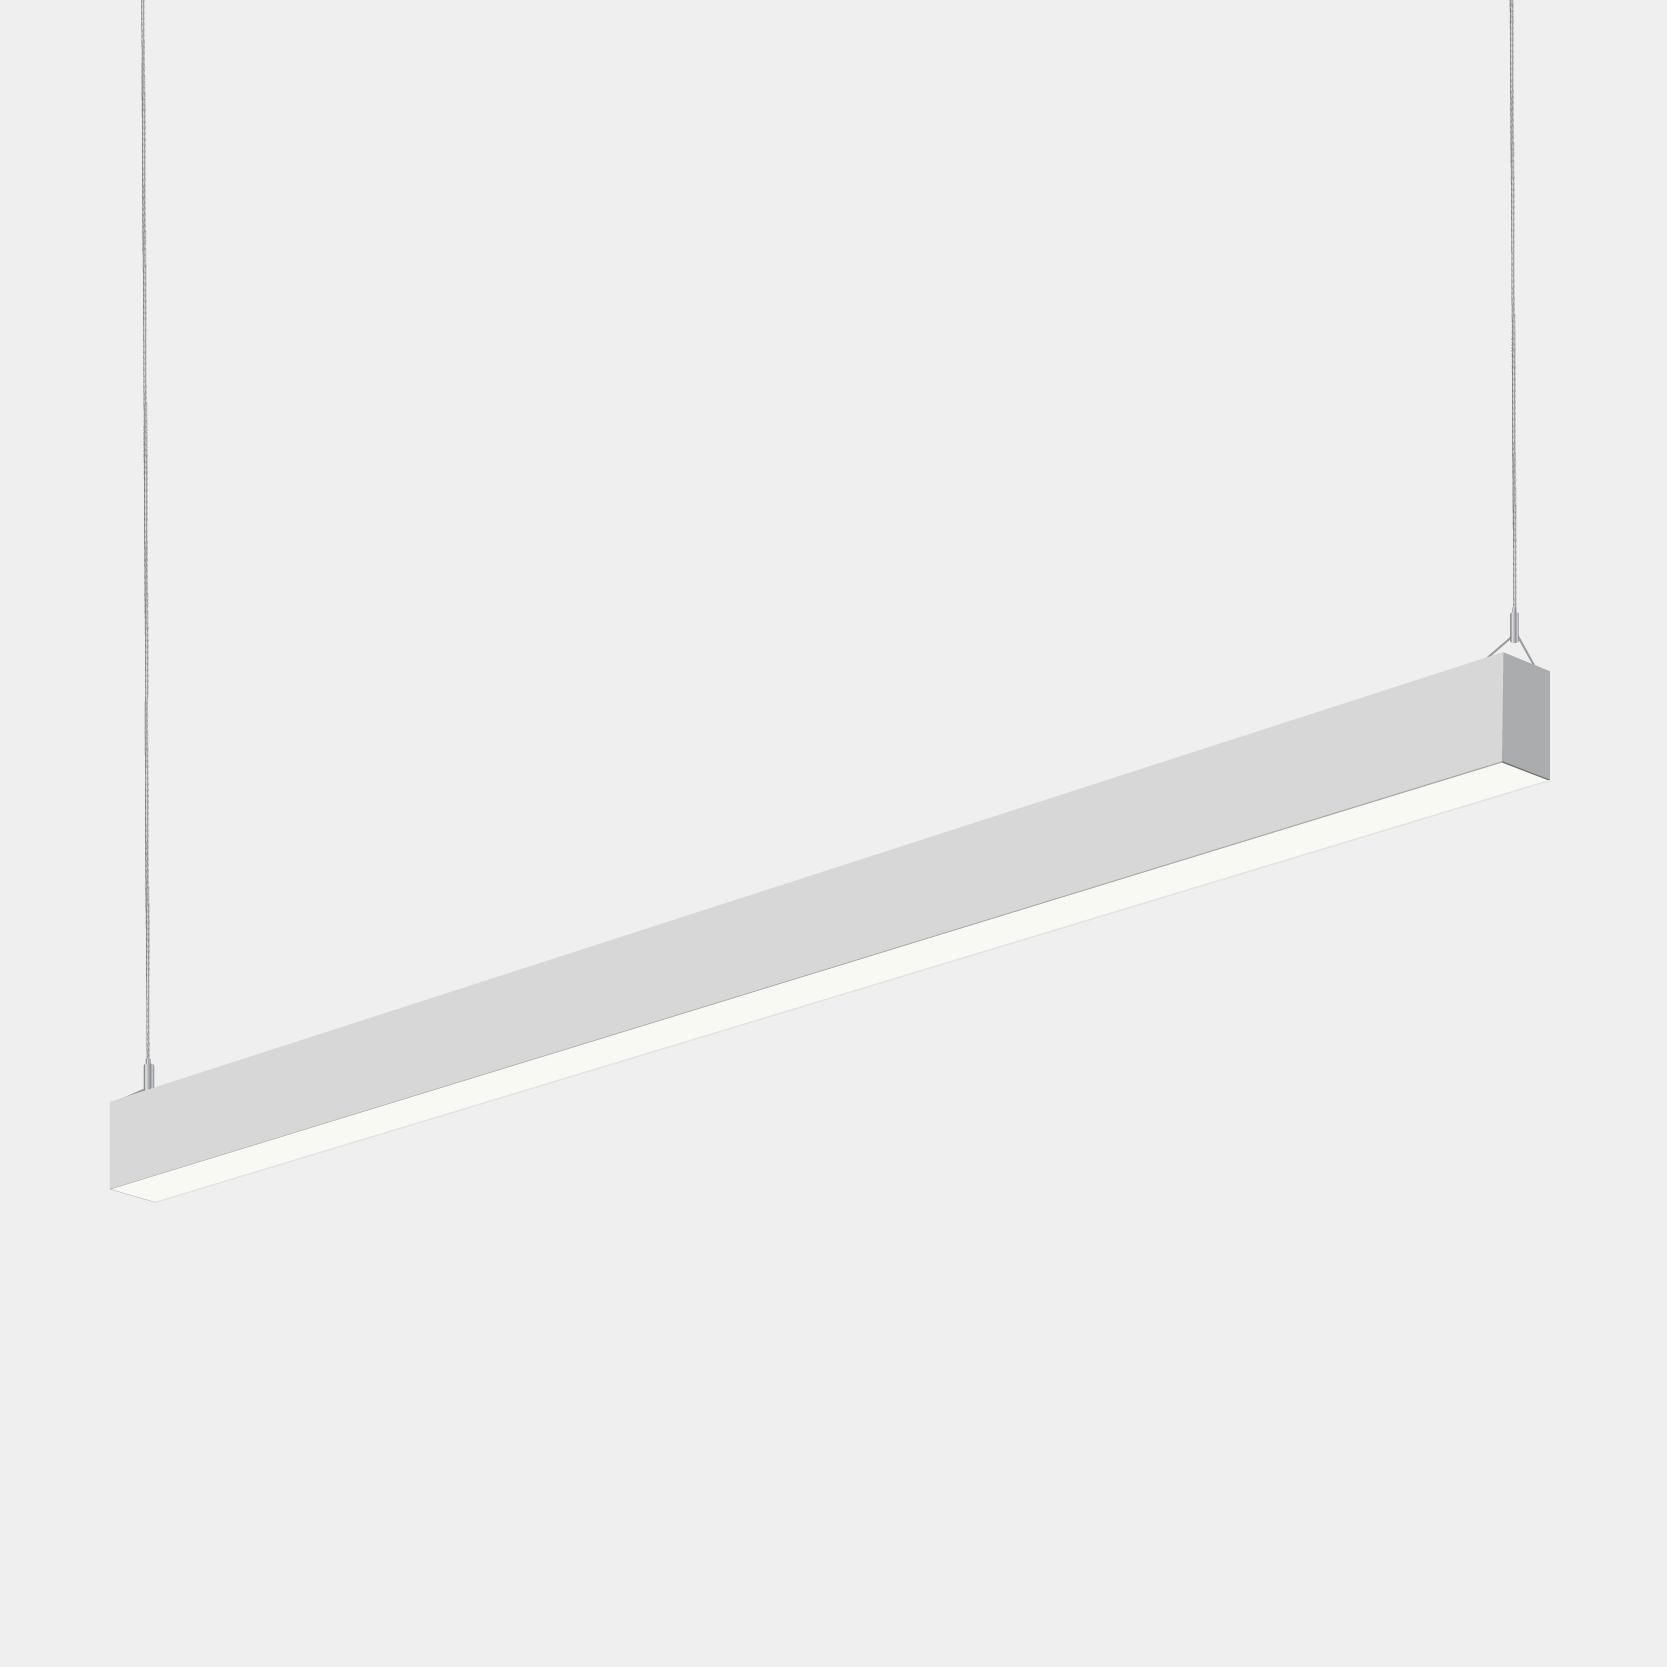 Alcon Lighting 12175 8 Beam 20 Series Architectural Led Foot Linear Pendant Mount Direct Indirect Light Fixture